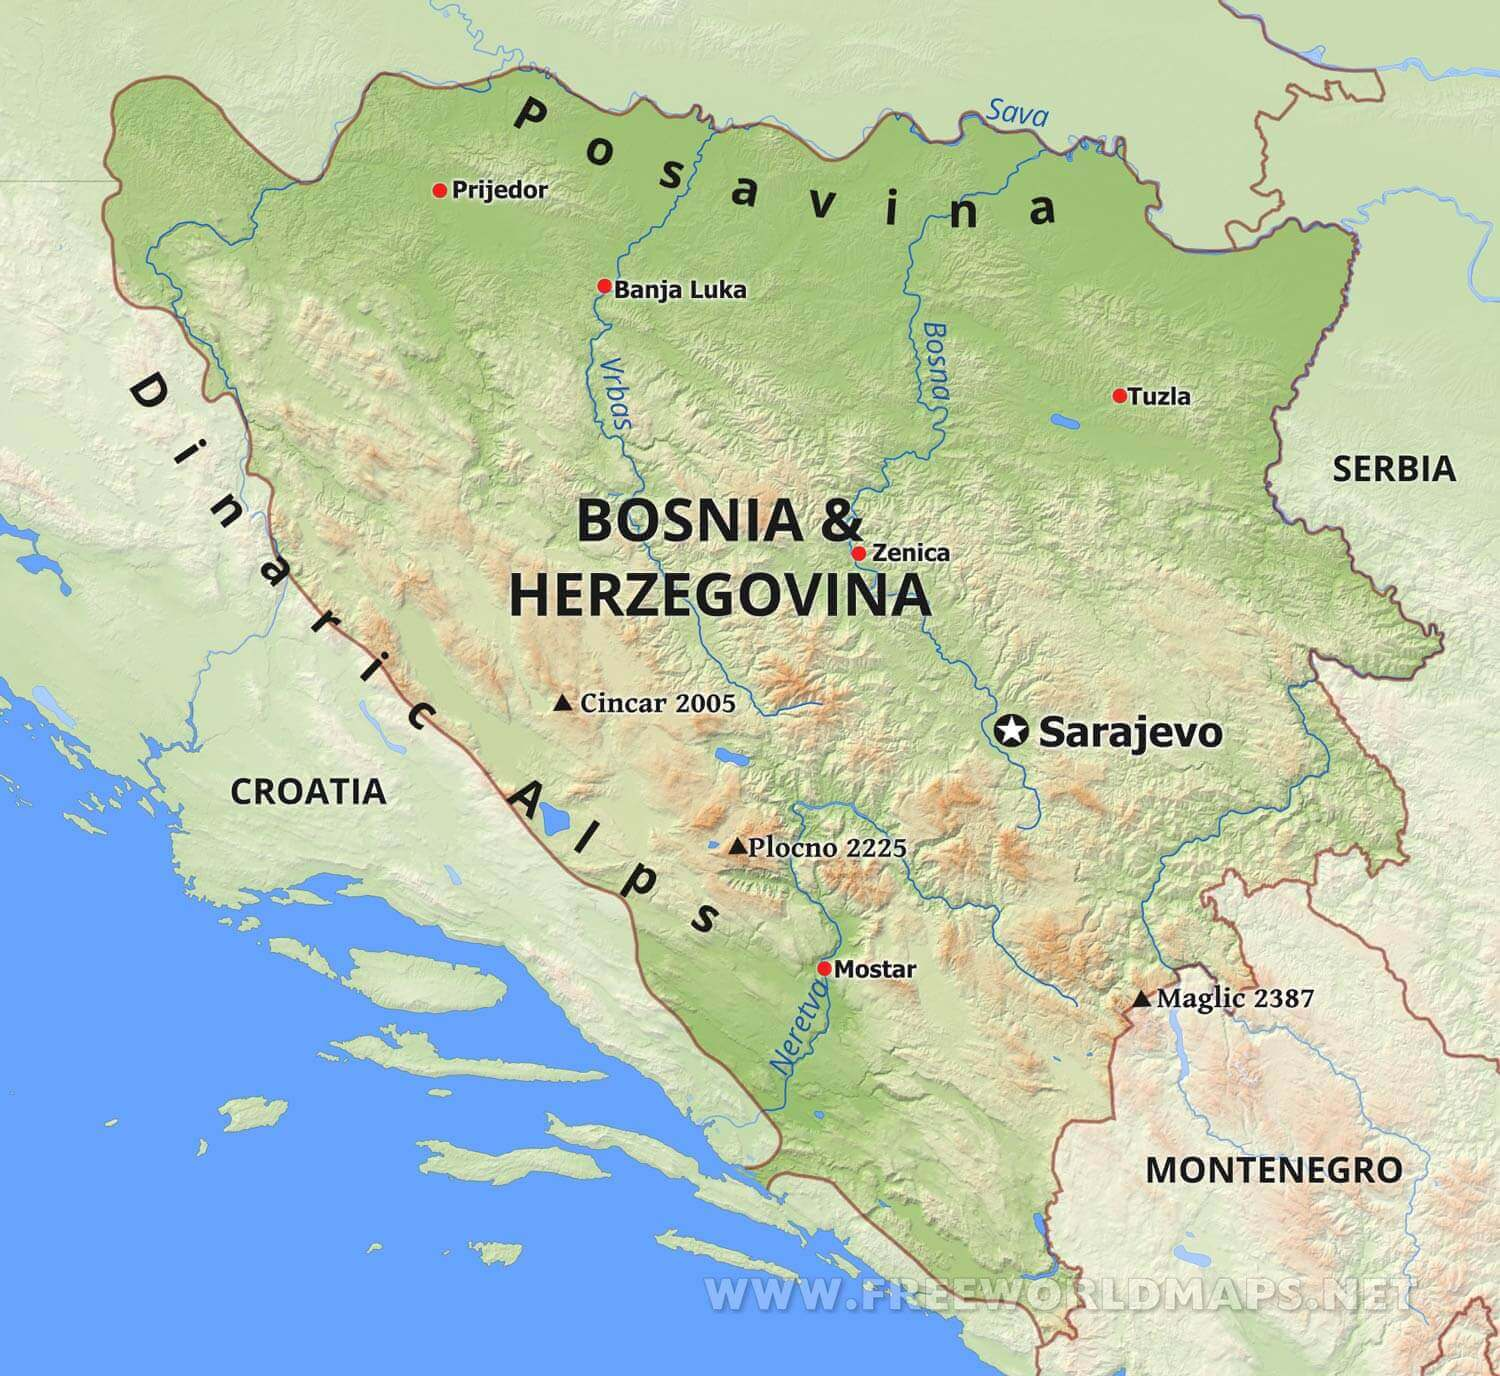 Bosnia Physical Map on map of macedonia, map of san marino, map of albania, map of croatia, map of serbia, map of yugoslavia, map of bosnia and surrounding countries, republic of macedonia, map of sarajevo, map of turkey, map of malta, map of slovenia, bosnian war, republic of ireland, map of europe, map of eritrea, map of india, republika srpska, map of bulgaria, srebrenica massacre, map of kosovo, map of hungary, map of montenegro, map of czech republic,